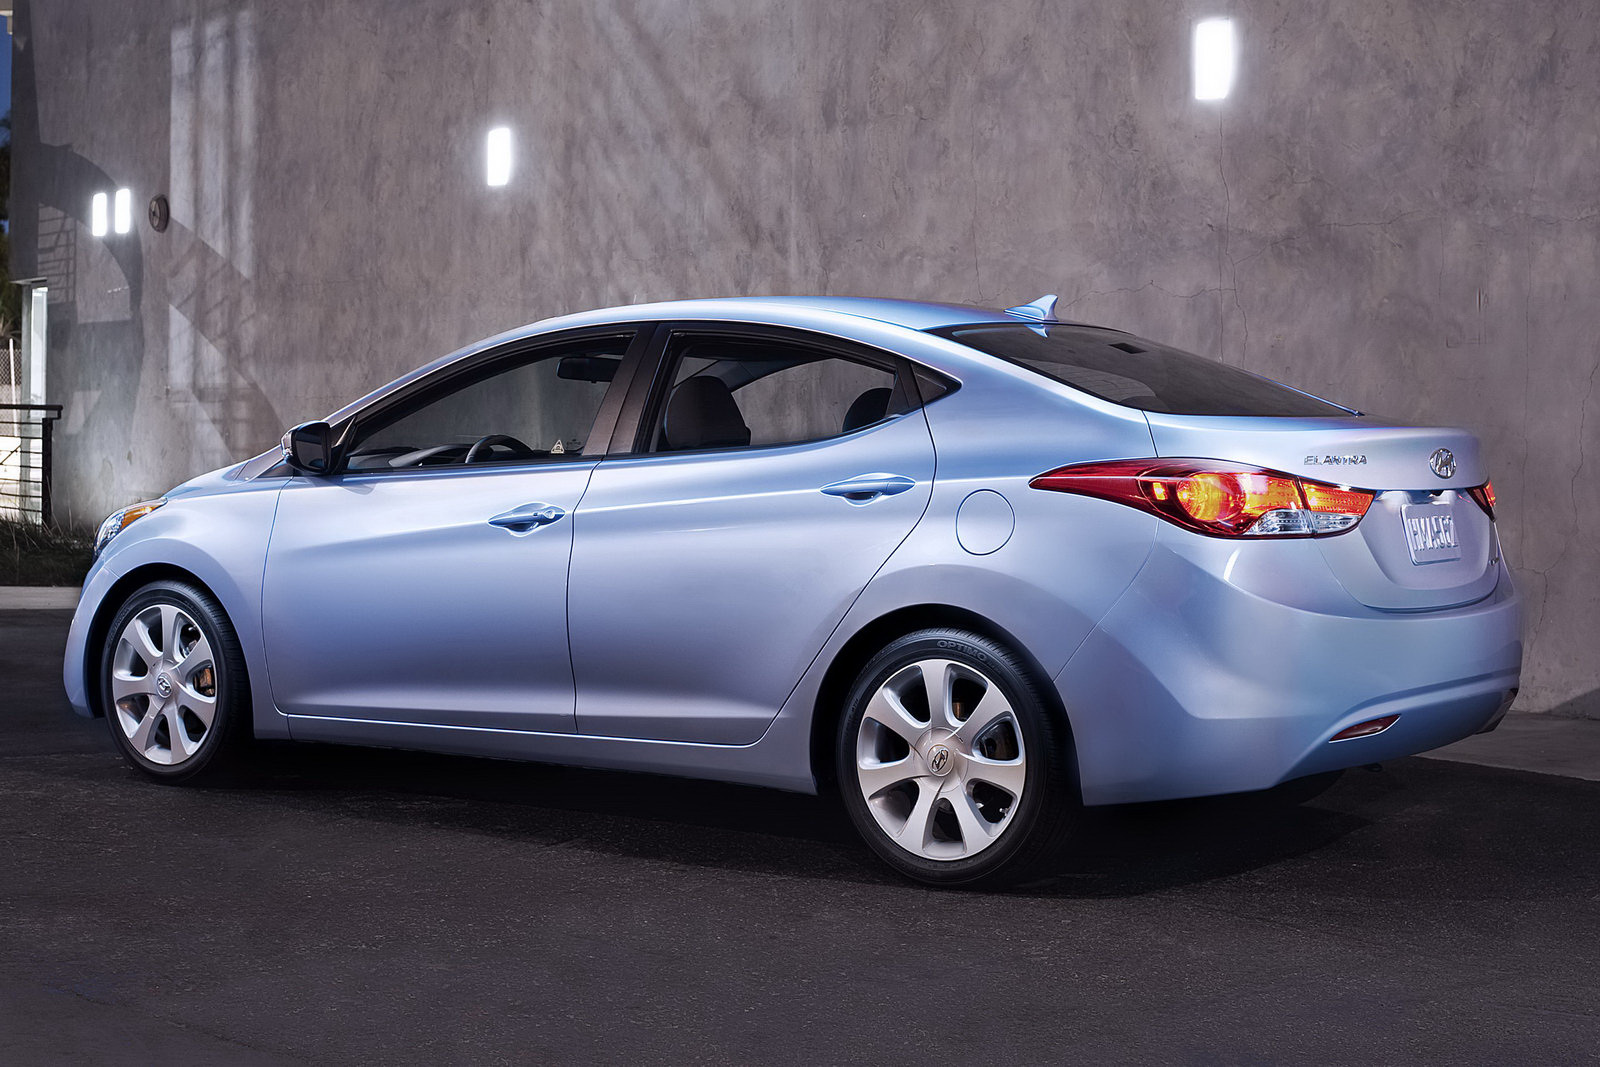 Hyundai and Kia overstate fuel economy figures